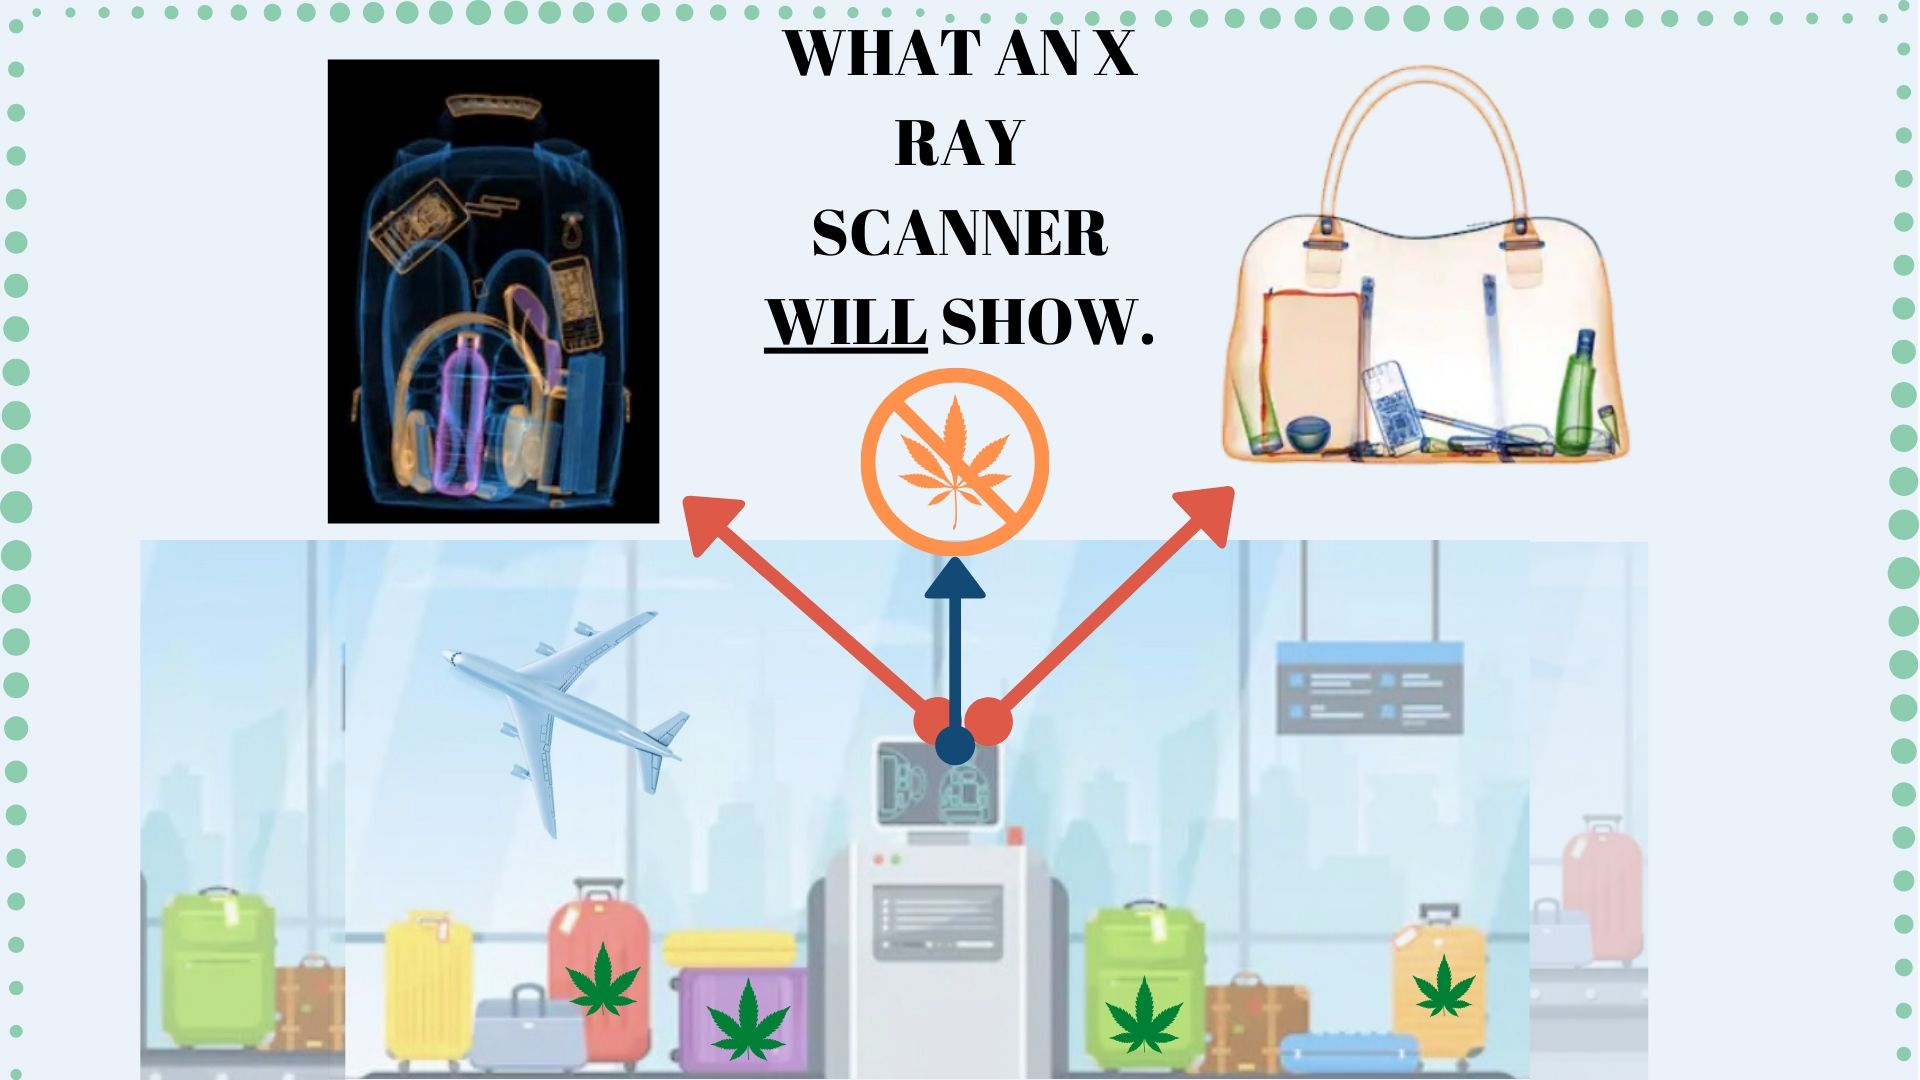 weed will not show on an xray